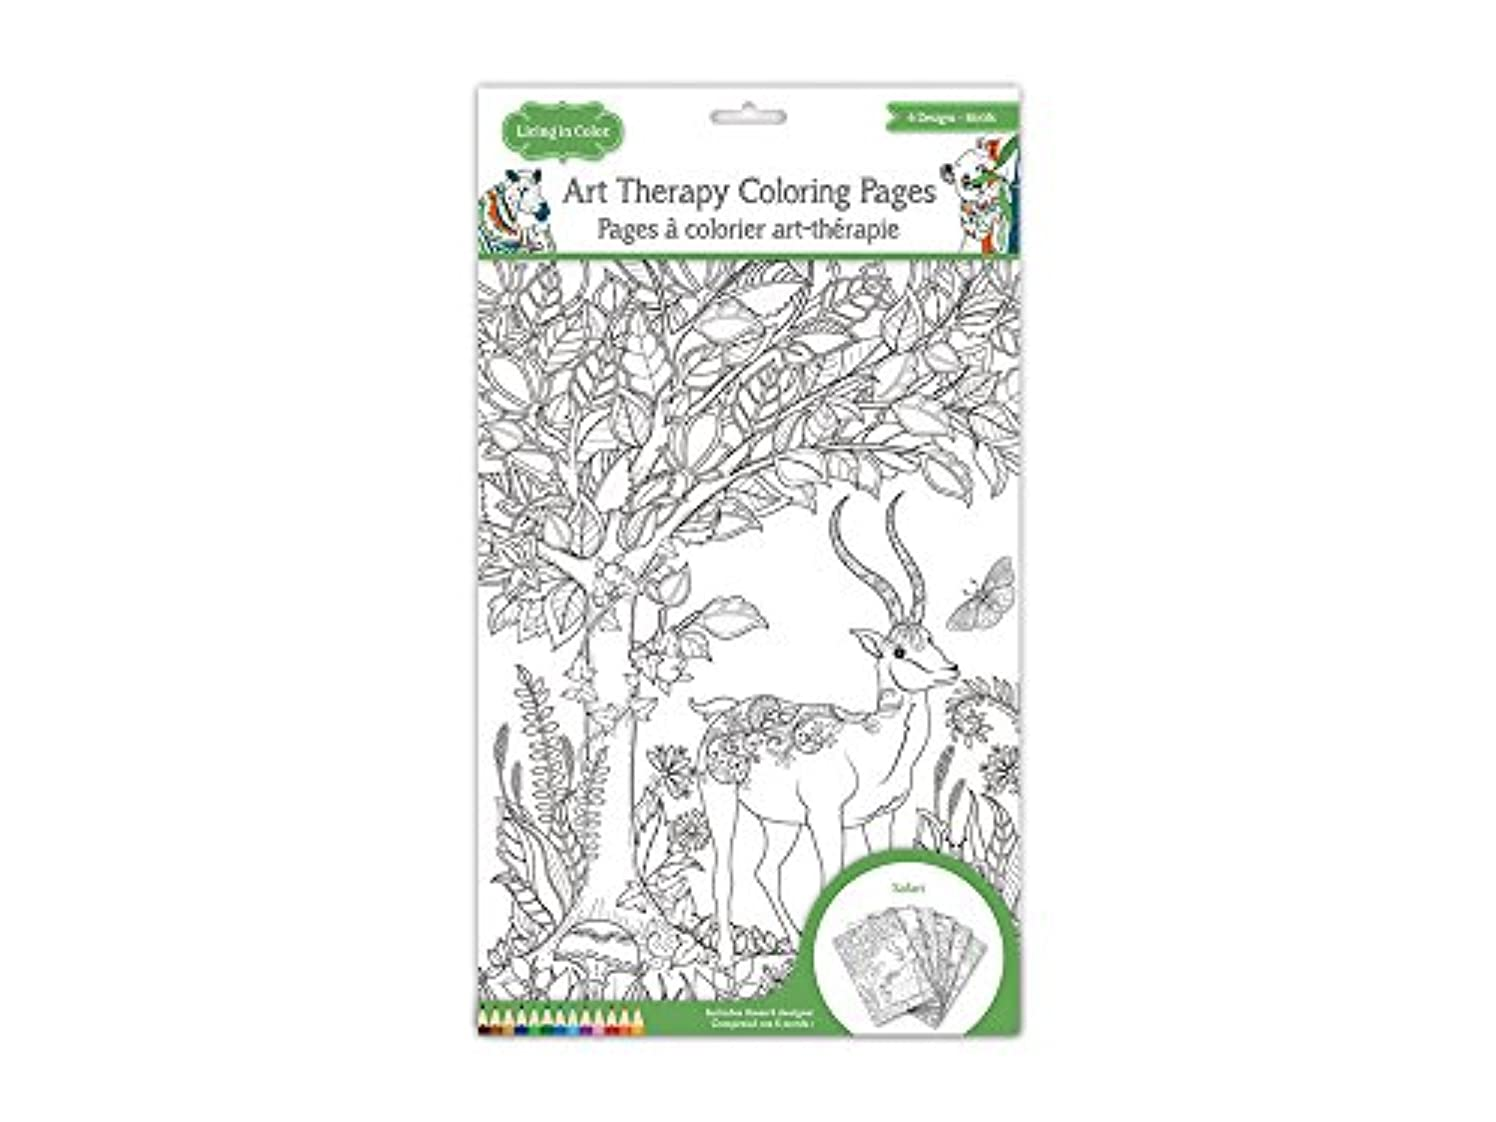 Living In Color Art Therapy Coloring Pages 11.8in x 8.2in, 6 Designs, Single pages to easily frame your masterpiece, Safari